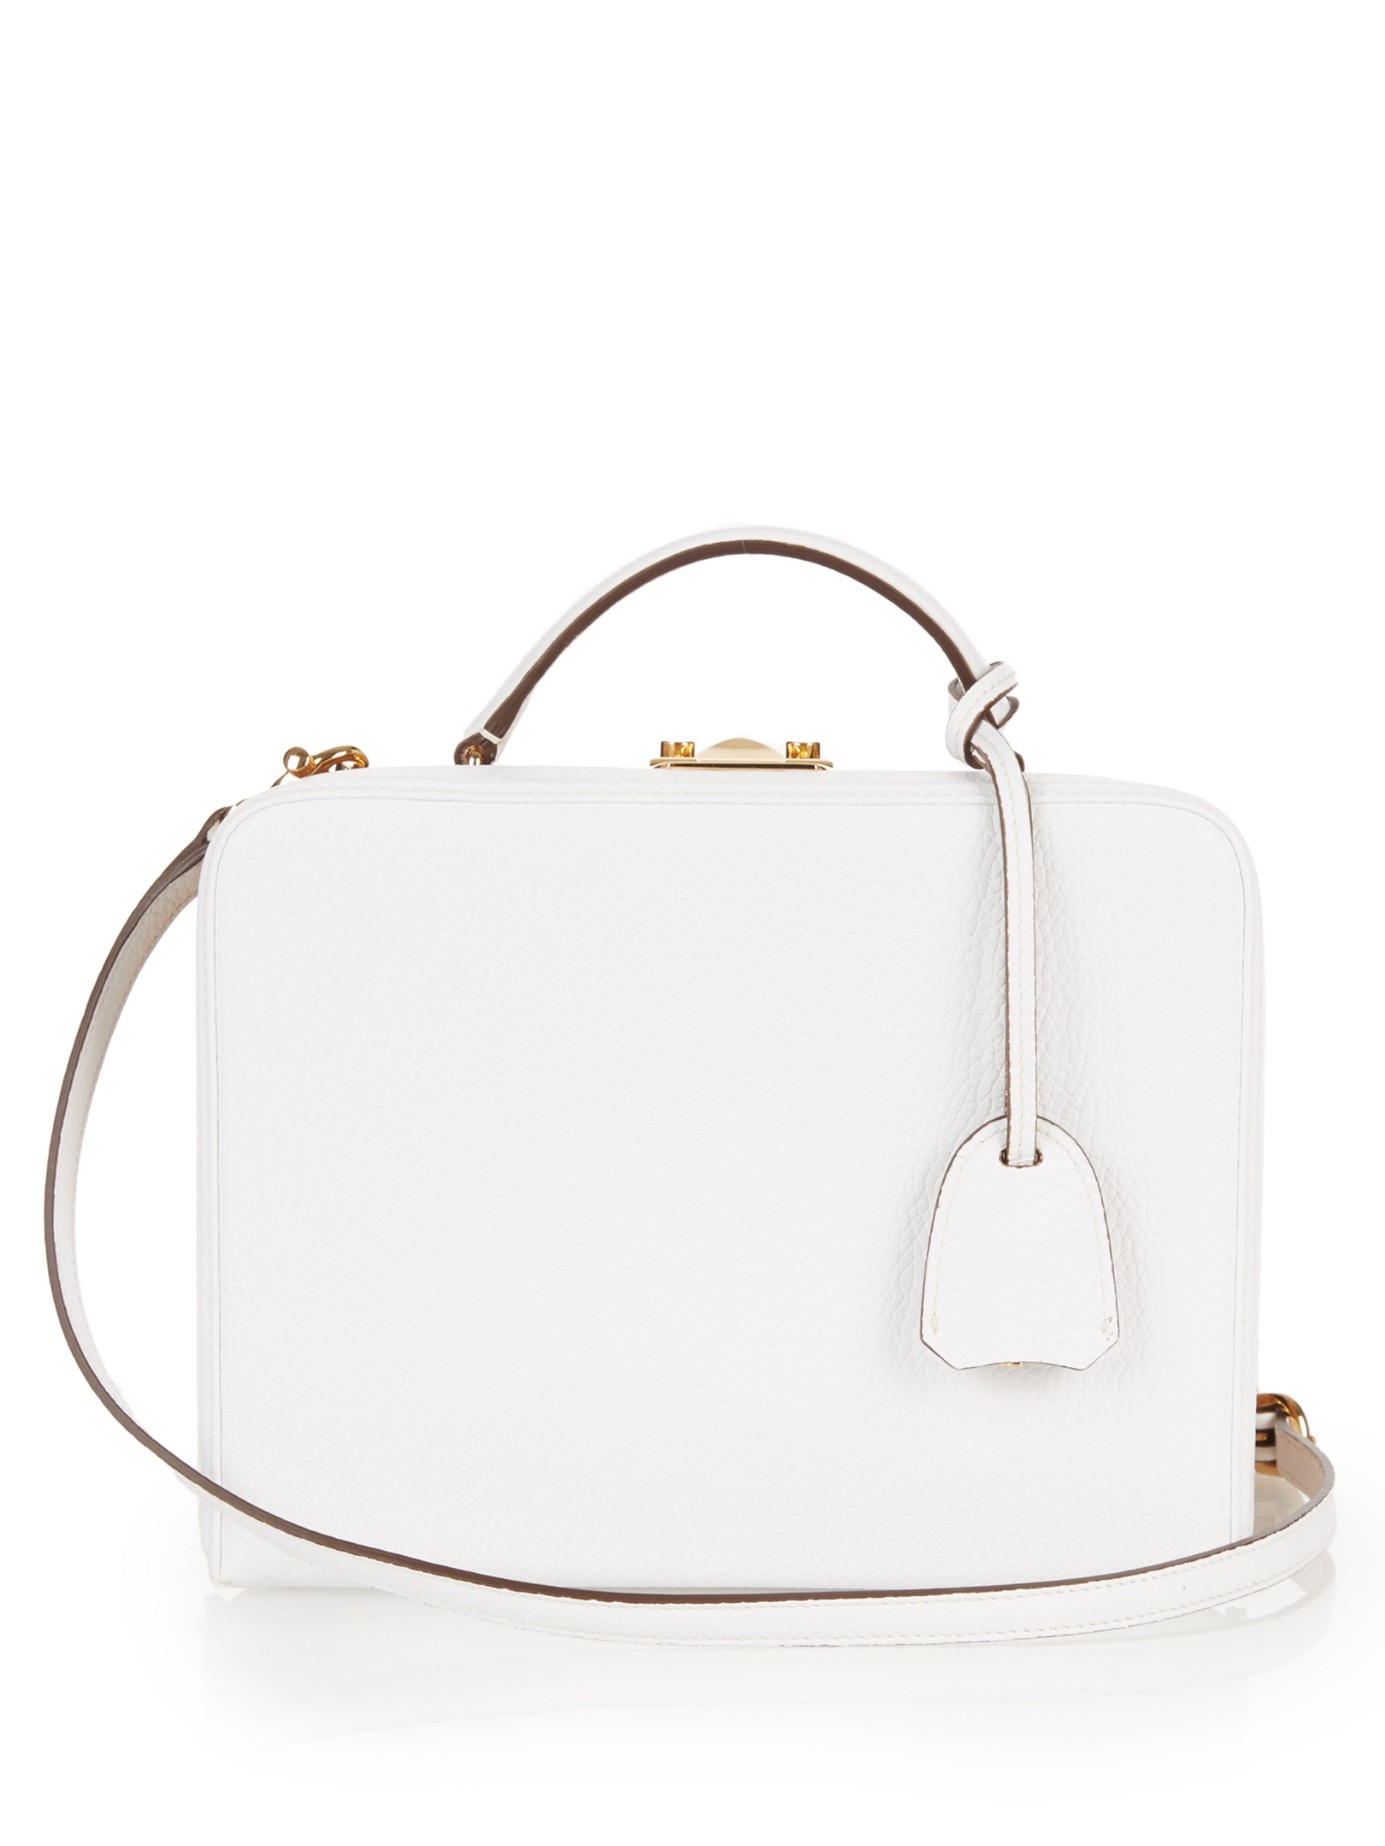 fb43d2f799d4 Gallery. Previously sold at  MATCHESFASHION.COM · Women s Box Bags Women s  Cross Body Bags Women s Mark Cross Grace ...